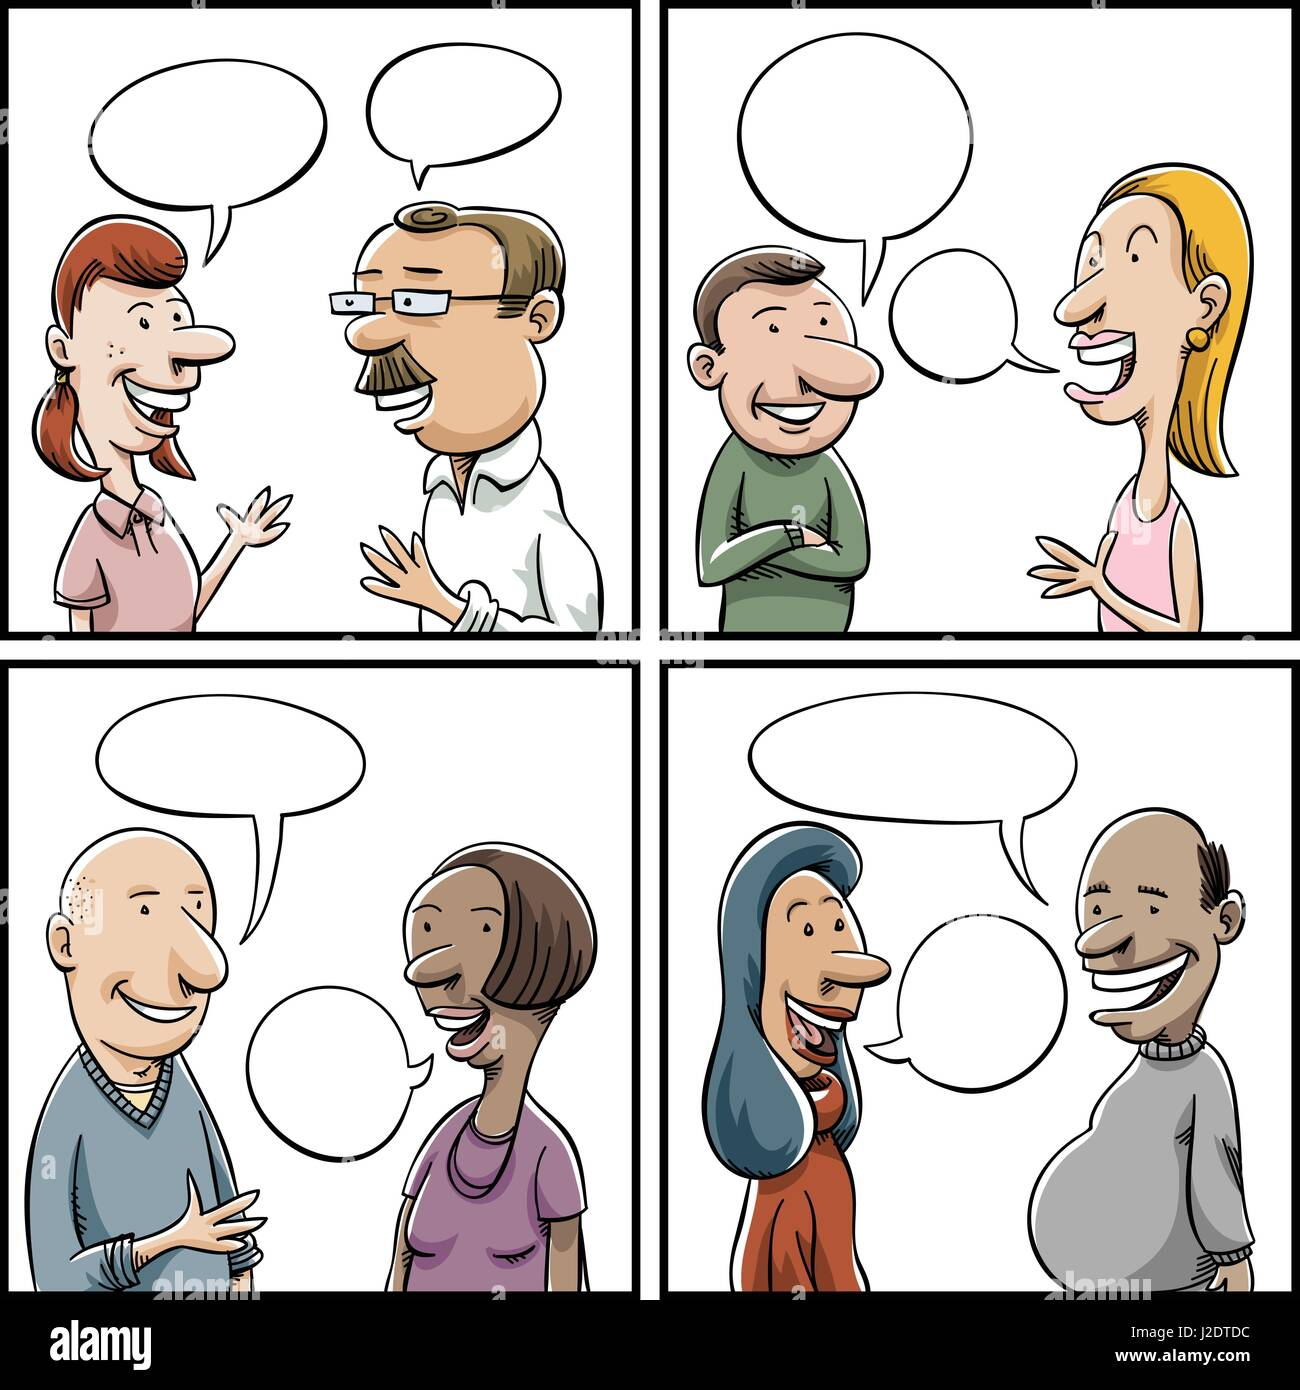 Four Panels Of A Variety Of Cartoon People Having